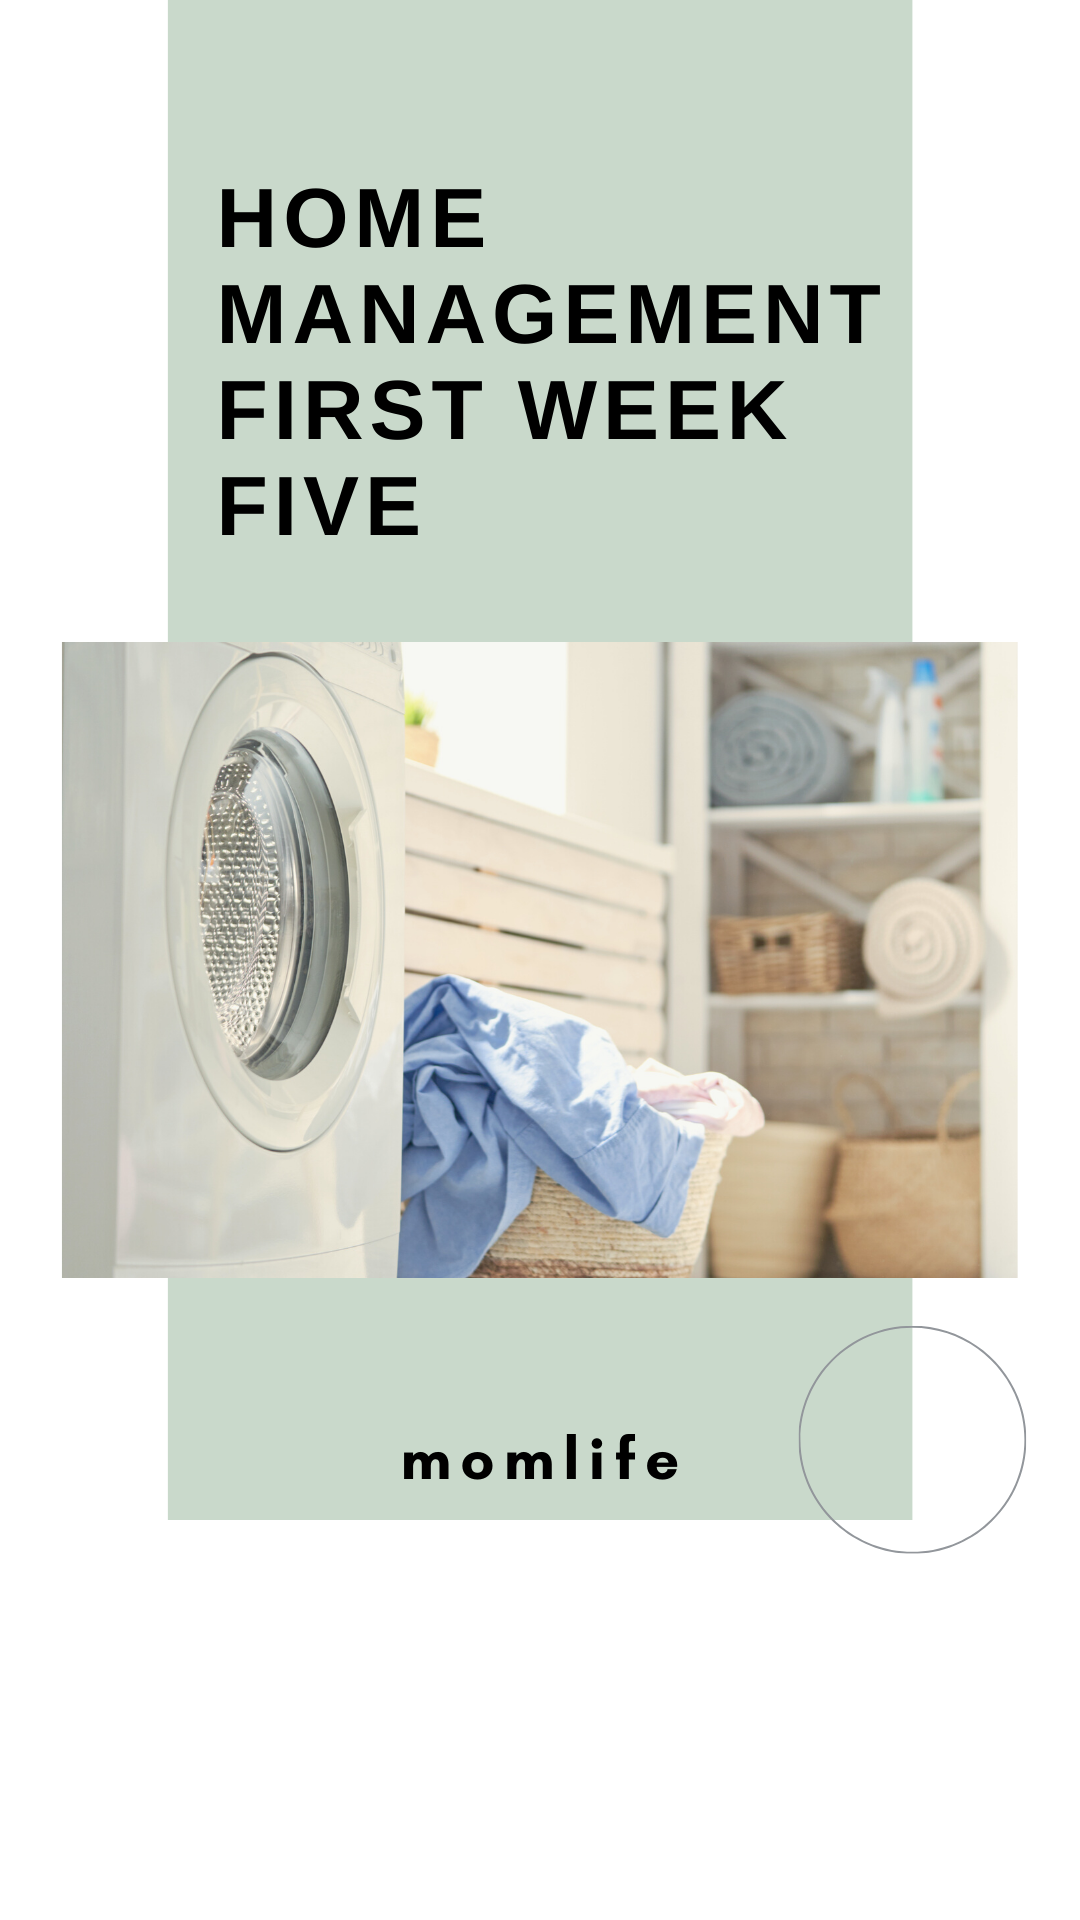 Picture of laundry room and title of blog First Week Five Home Management, home management system, home management tips, home management skilss, home management plan, what is the importance of home management, household management checklist, home management tips housewives